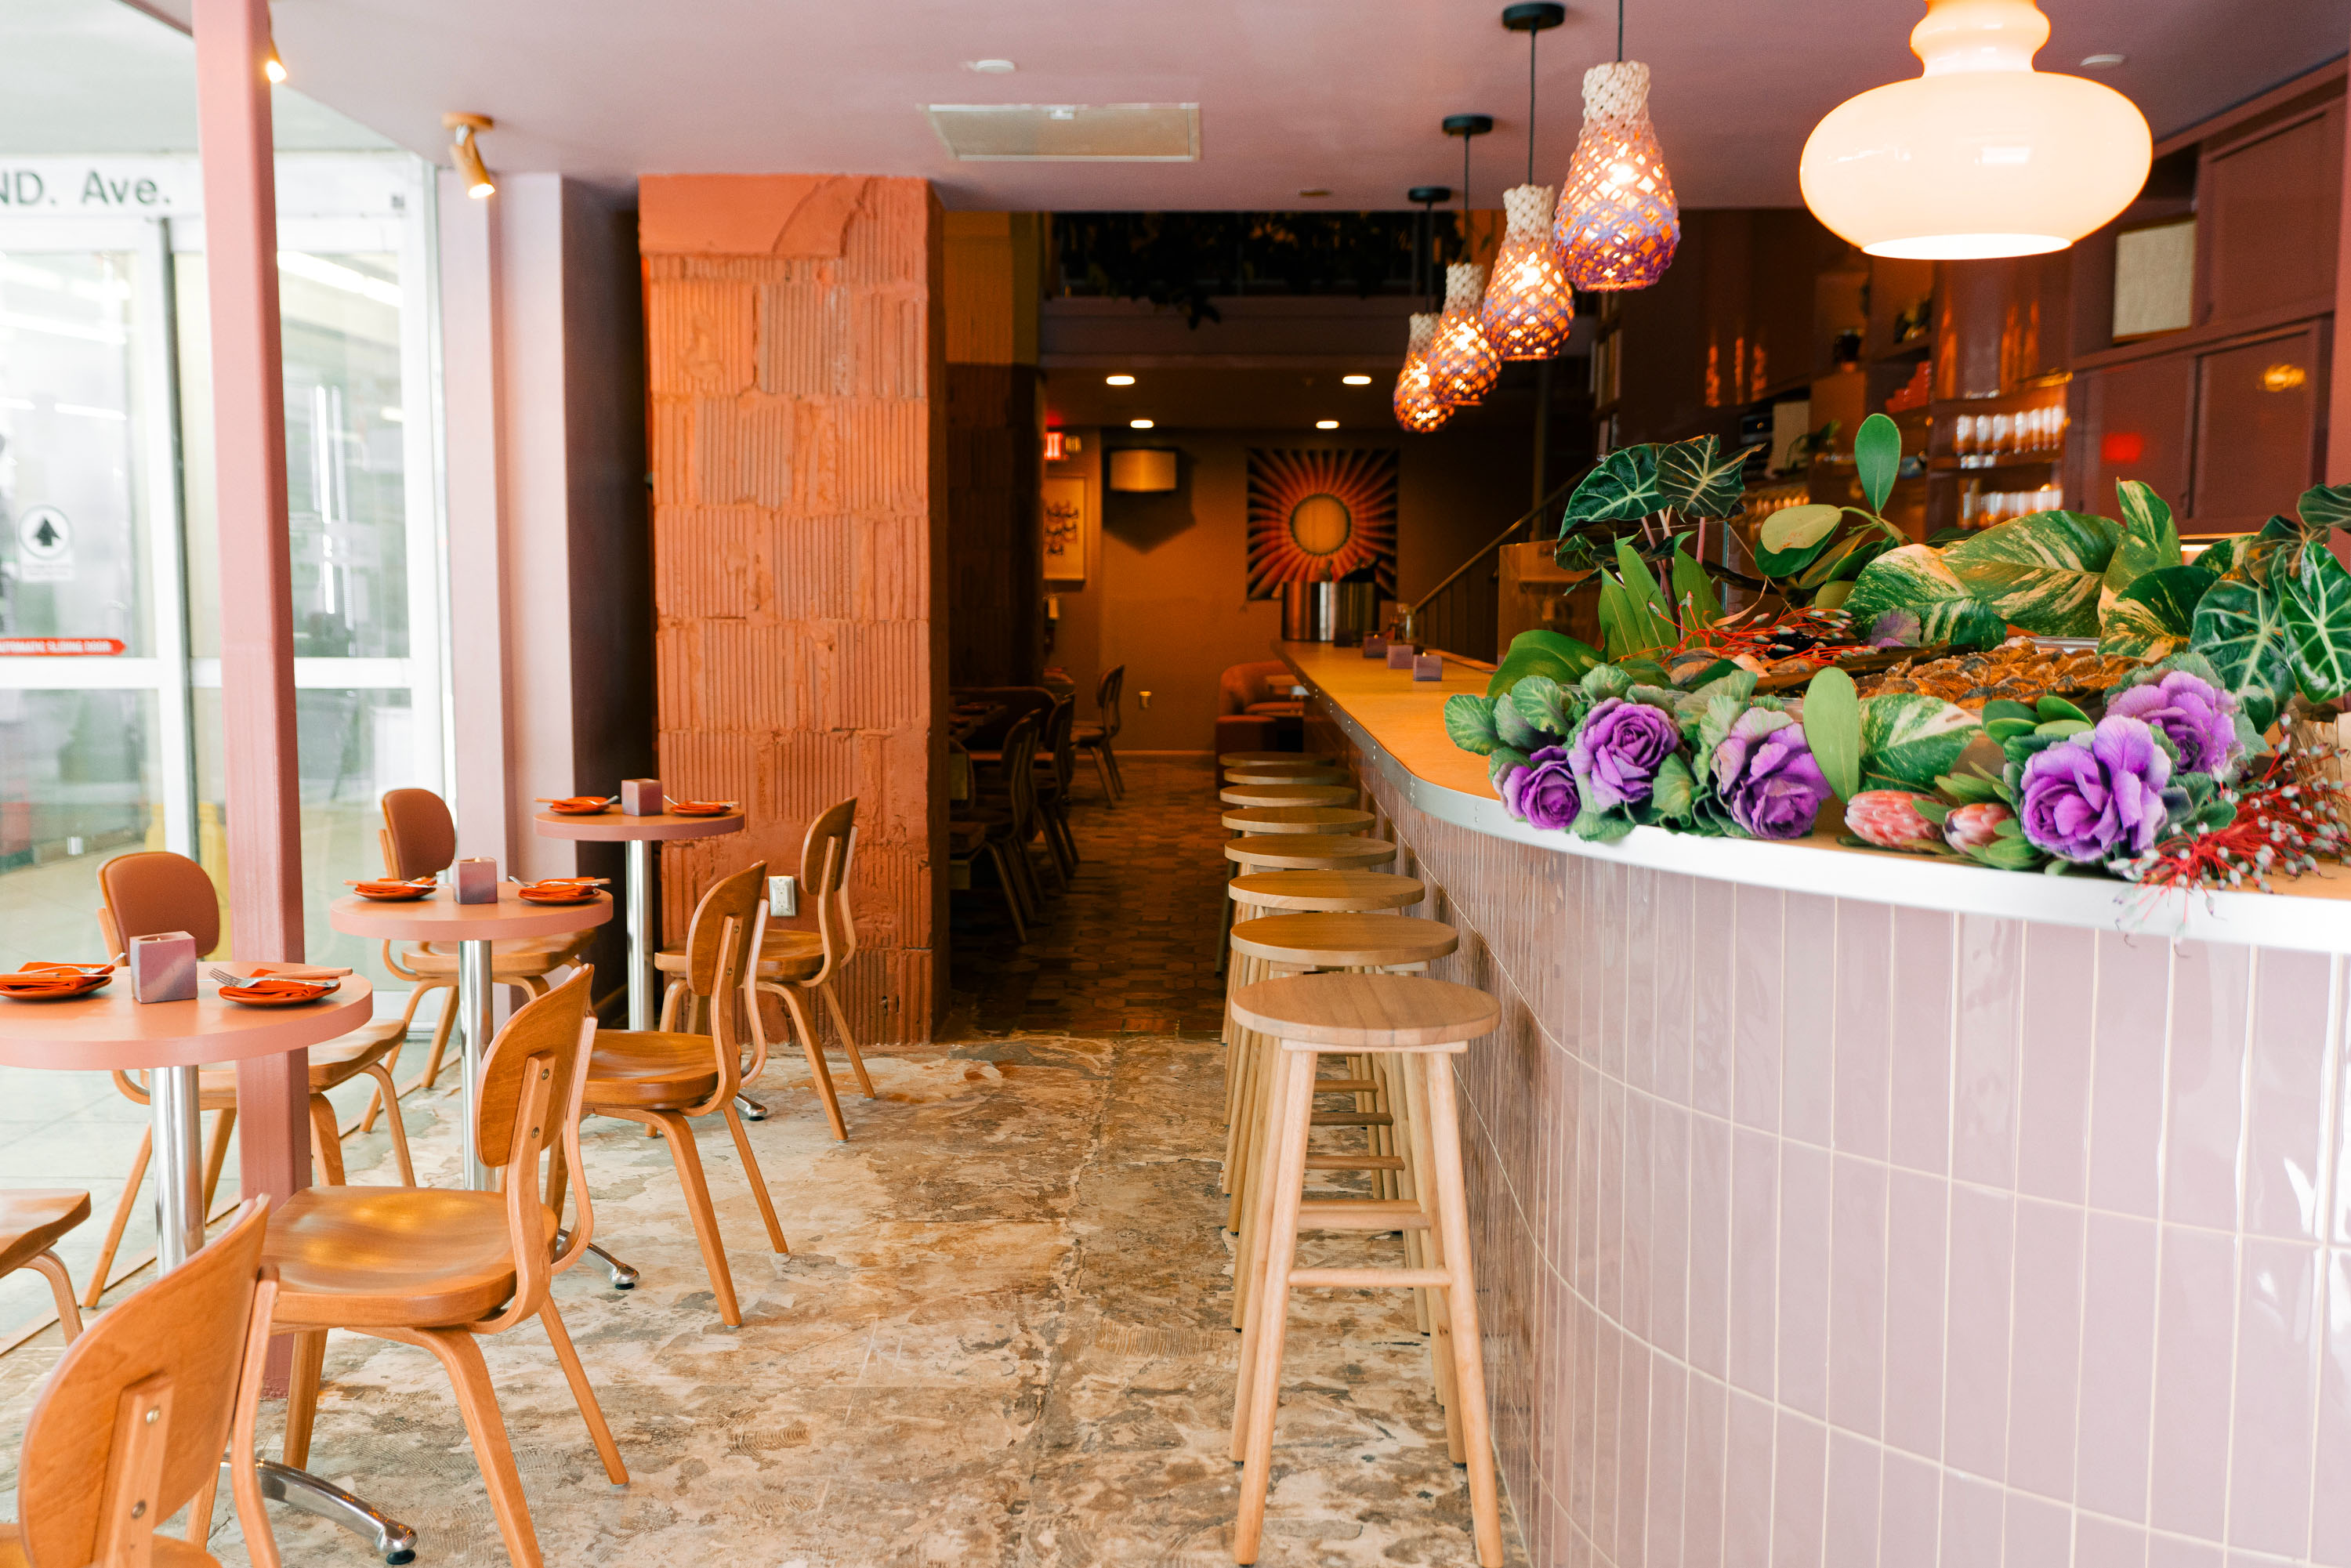 dining room and bar with wooden tables, pink bar area with flowers, vintage lights hanging from the ceiling